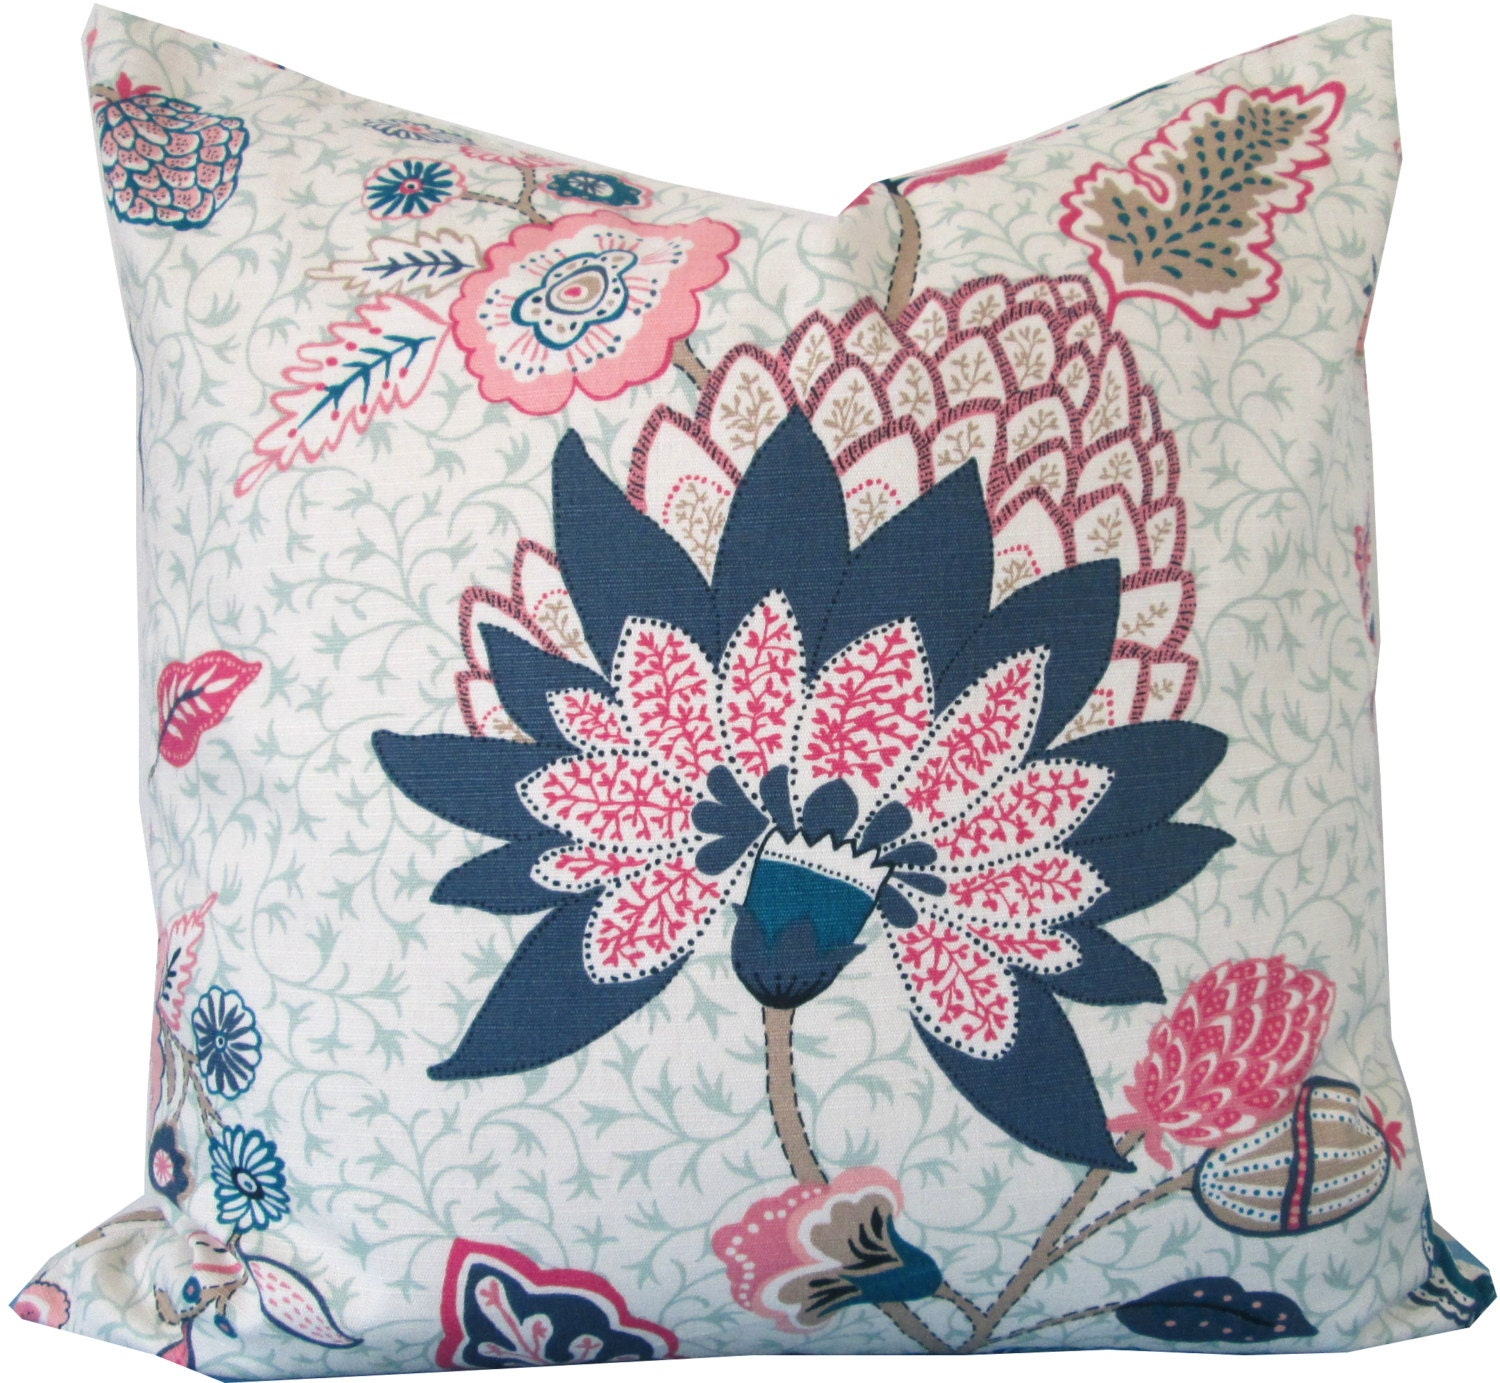 Blue And Pink Decorative Pillows : Designer Decorative Pillow Cover-Duralee-Navy Blue and Pink